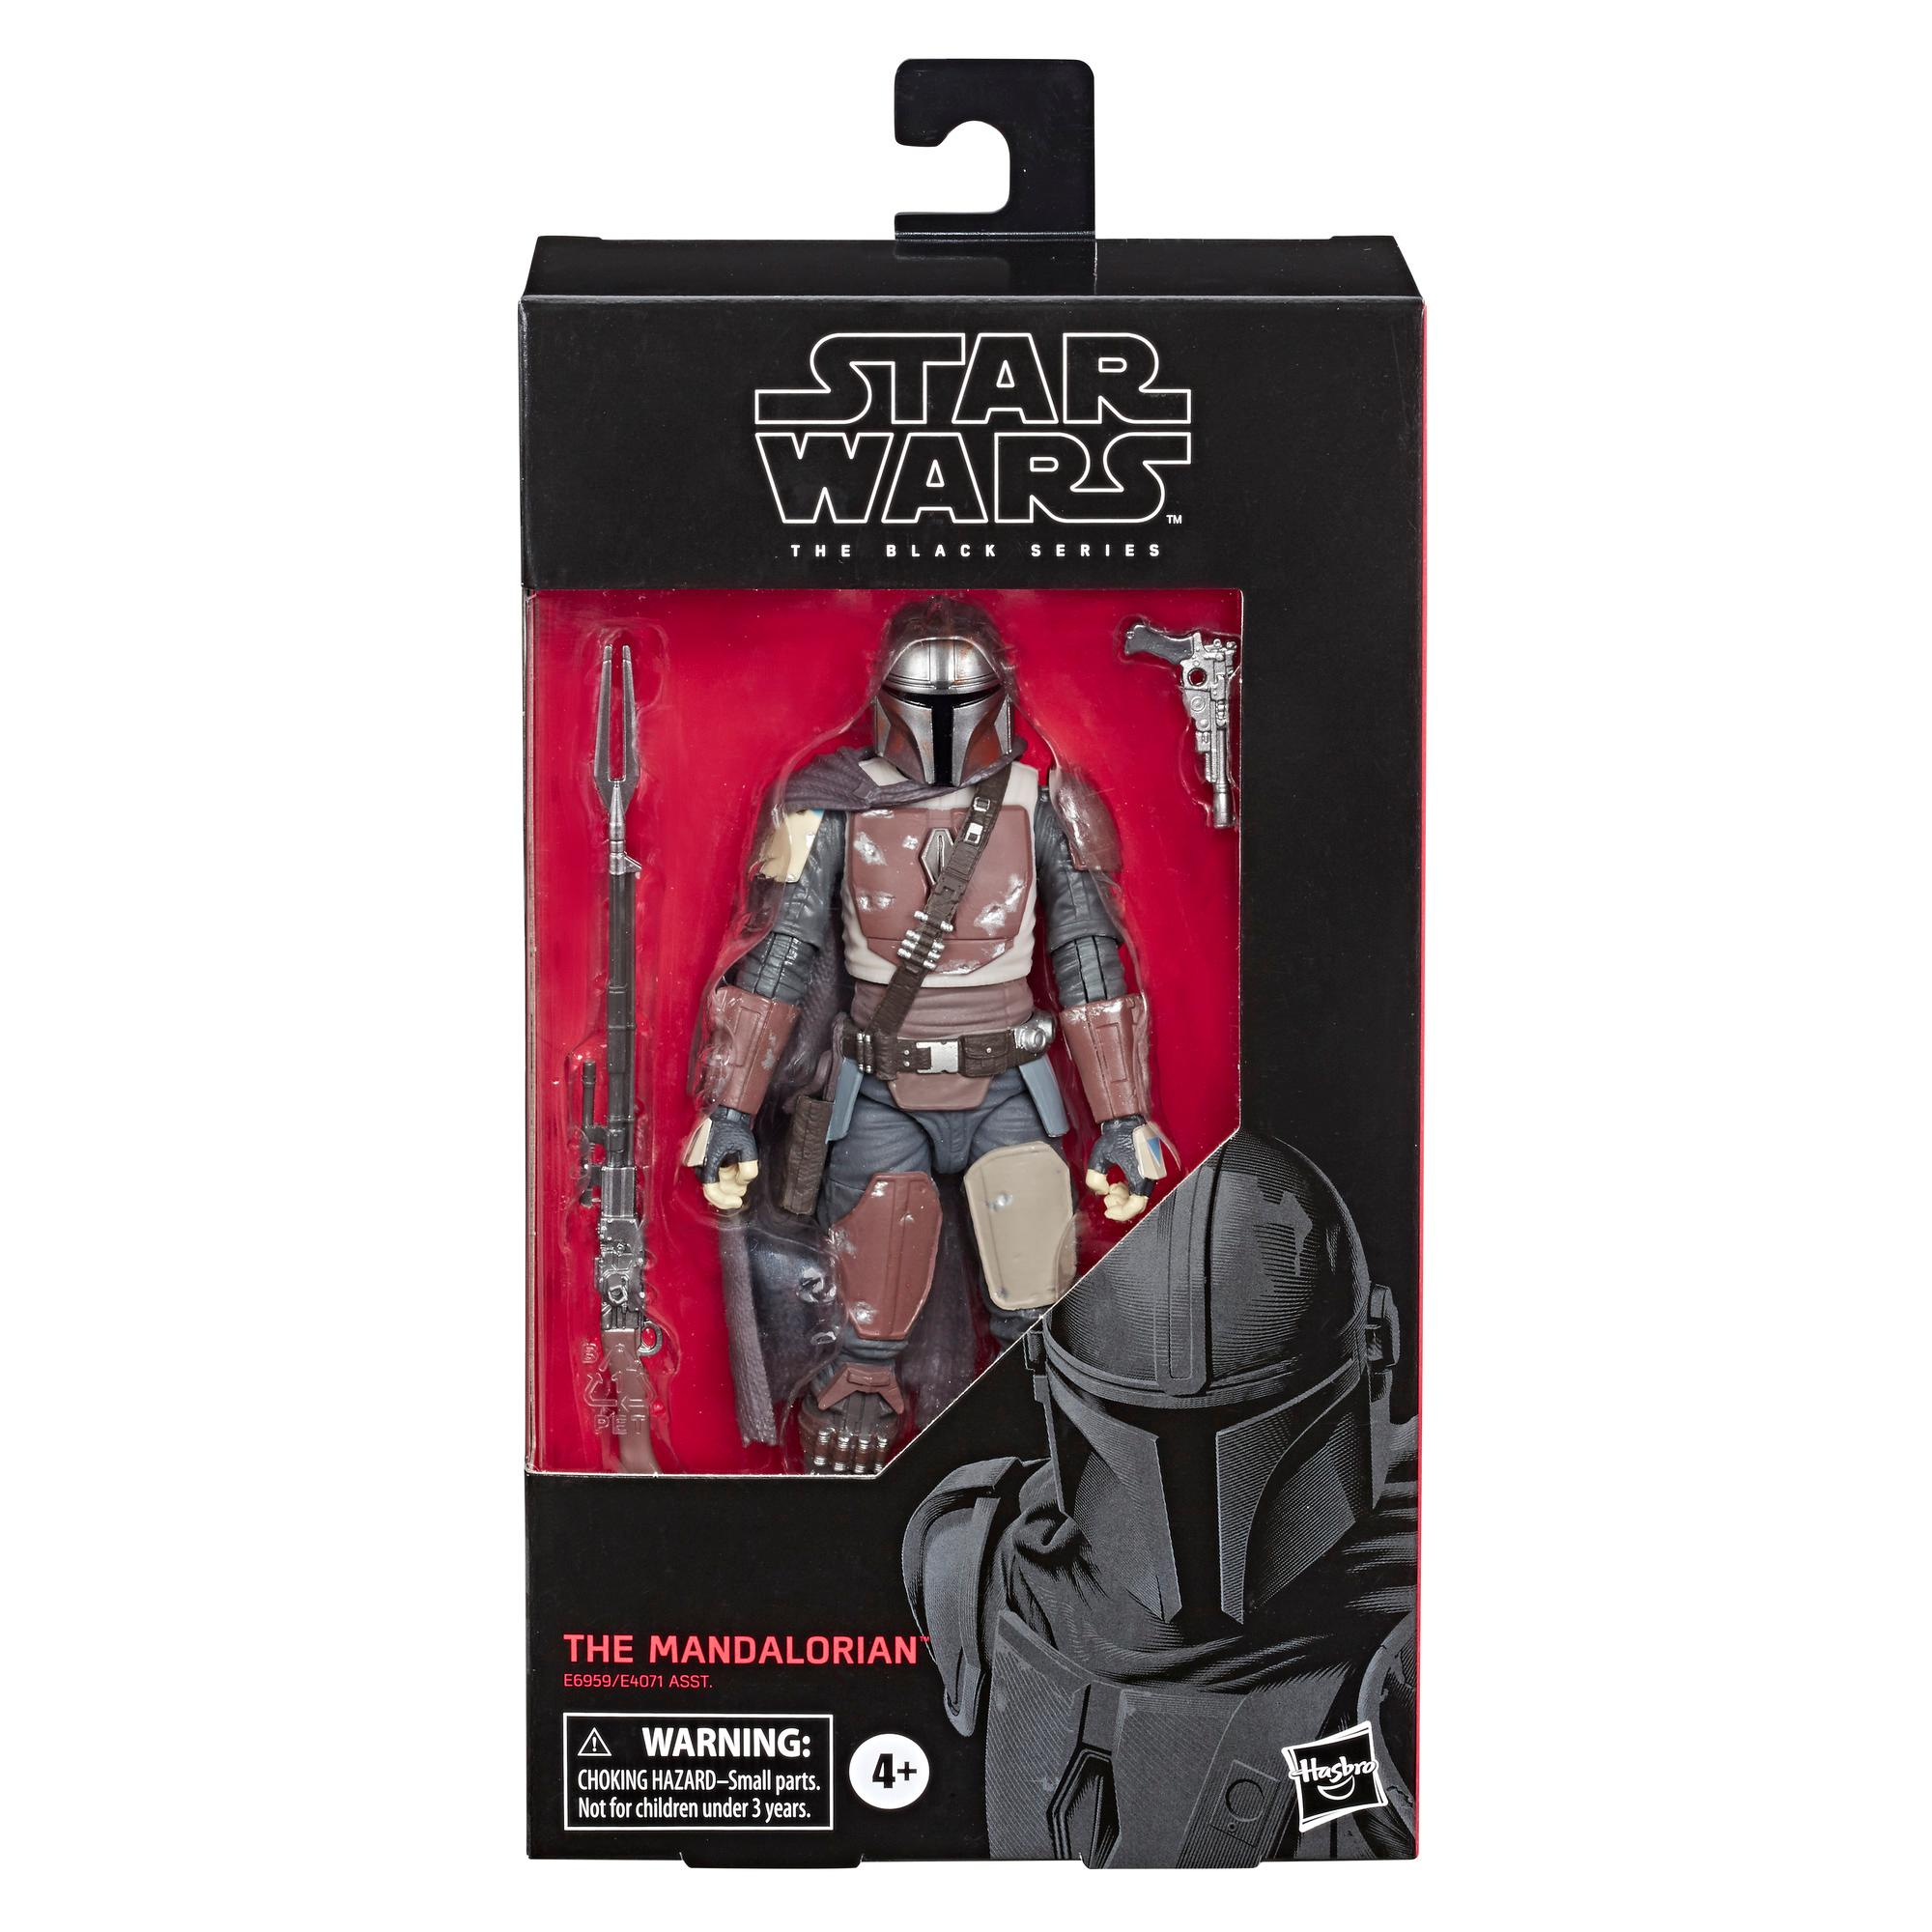 Star Wars The Black Series The Mandalorian Toy 6 Inch Scale Collectible Action Figure Toys For Kids Ages 4 And Up Star Wars